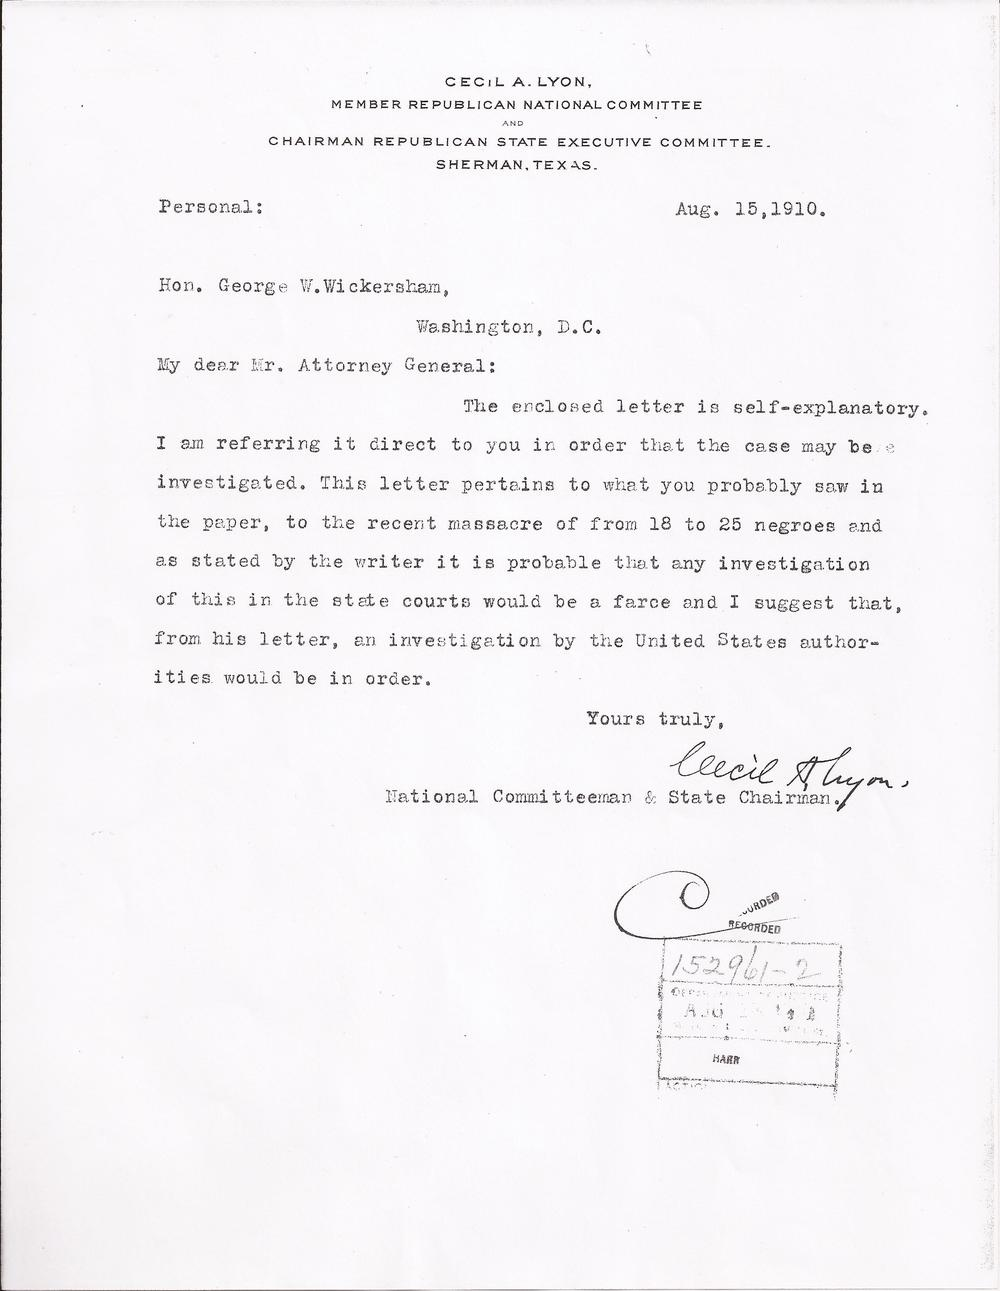 Cecil A. Lyon to George Wickersham, August 19, 1910 (United States Department of Justice, file no. 152961, R.G. 60, 1910)